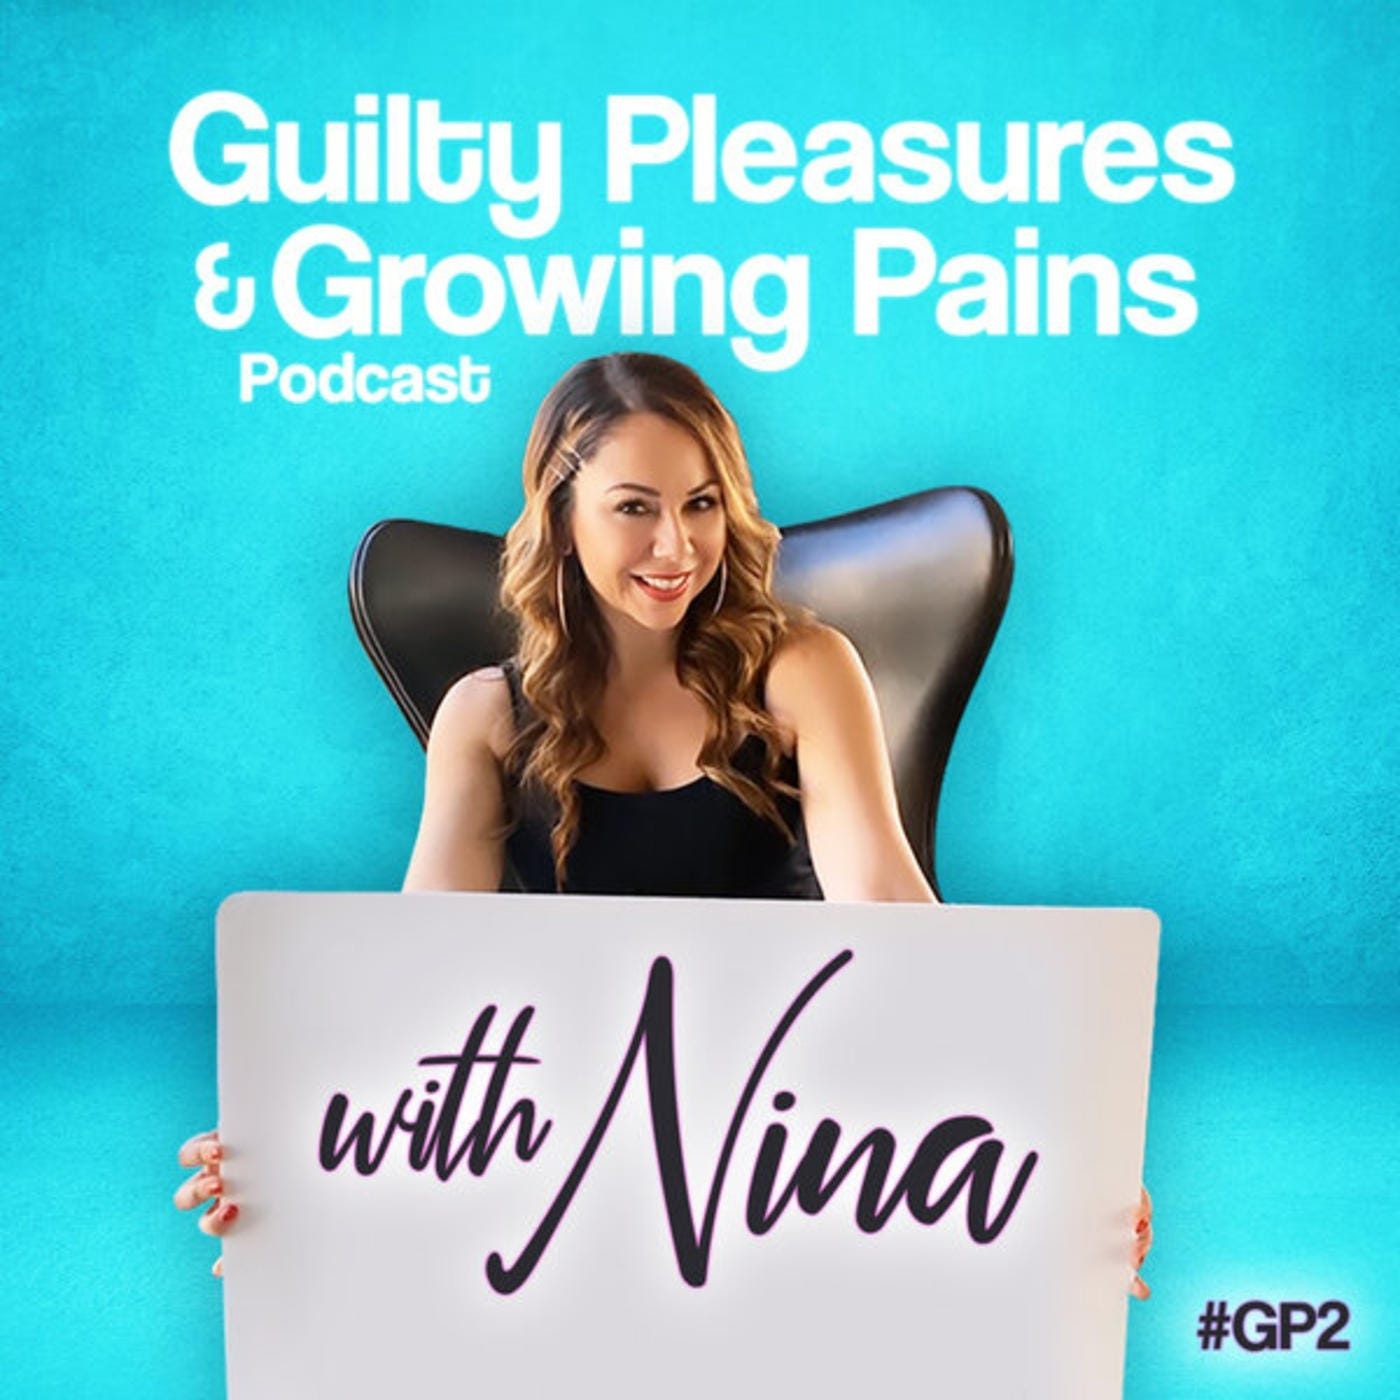 Guilty Pleasures and Growing Pains